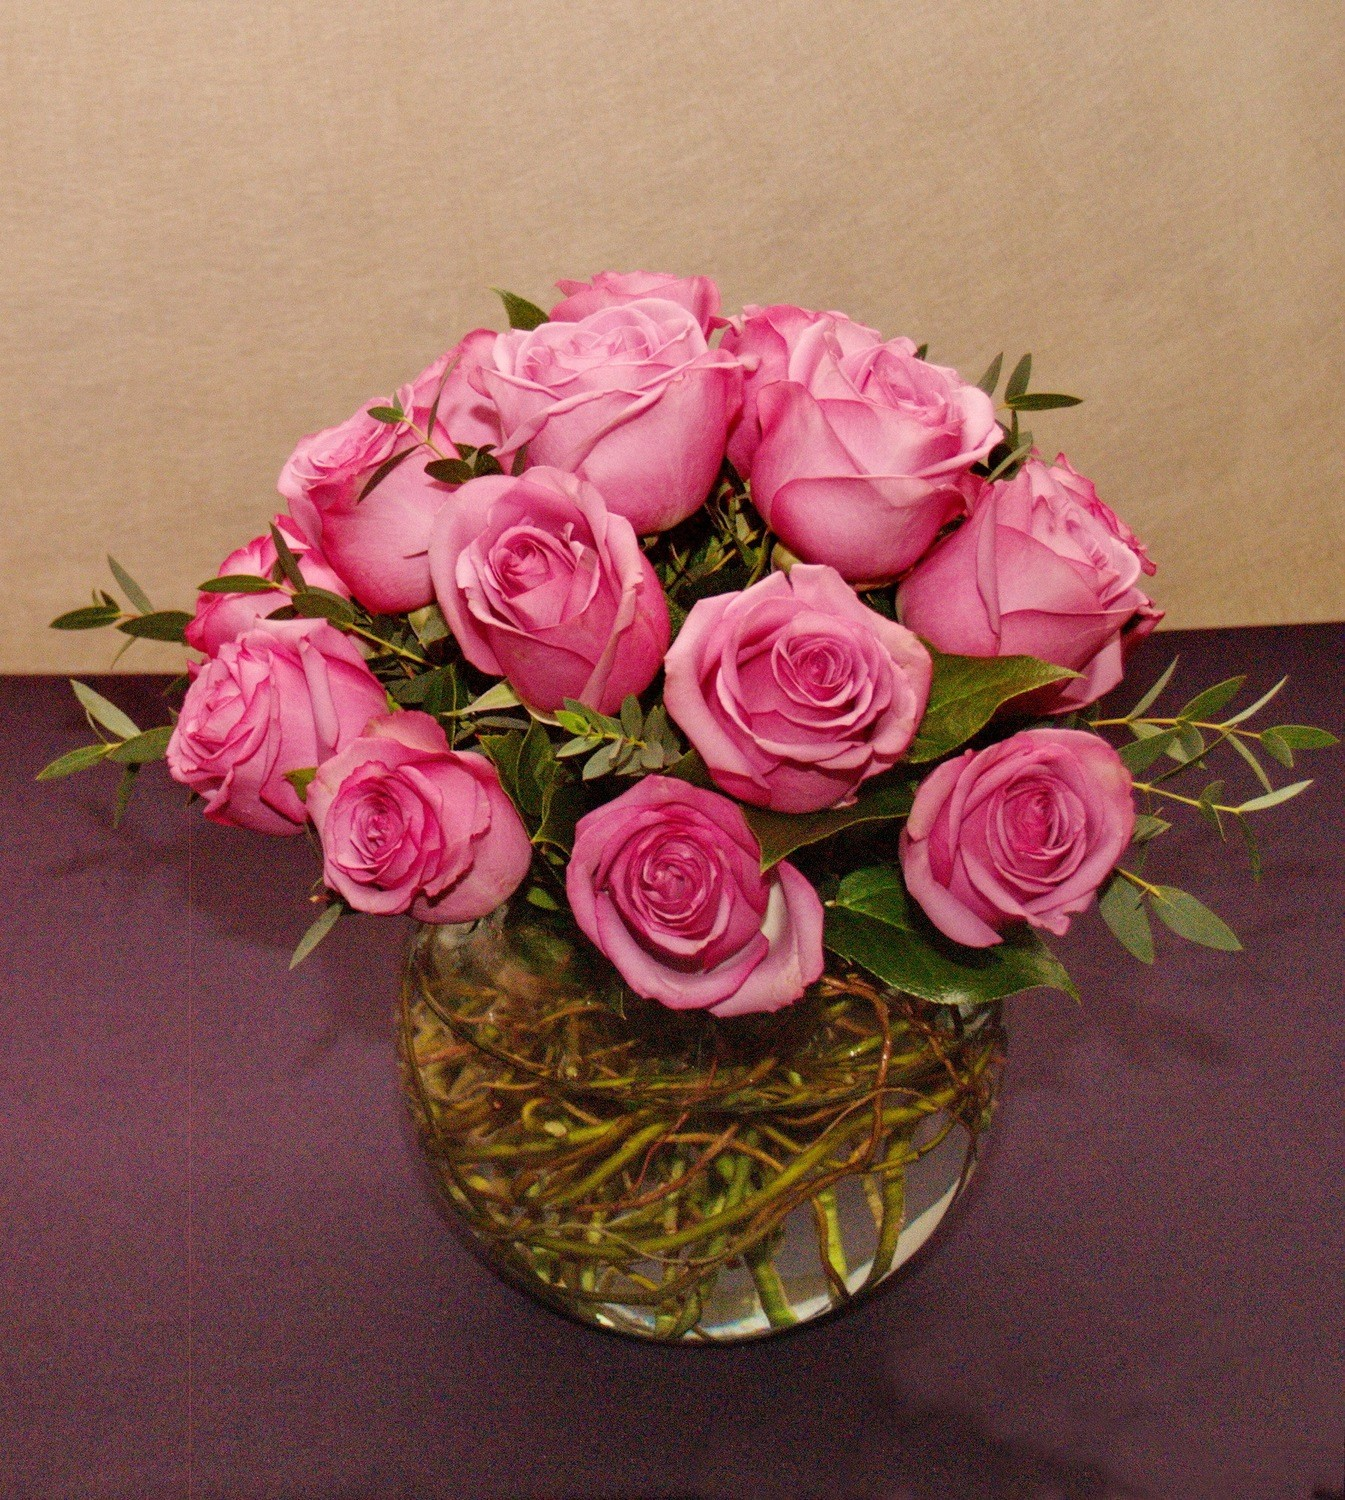 Bubble Bowl of Roses